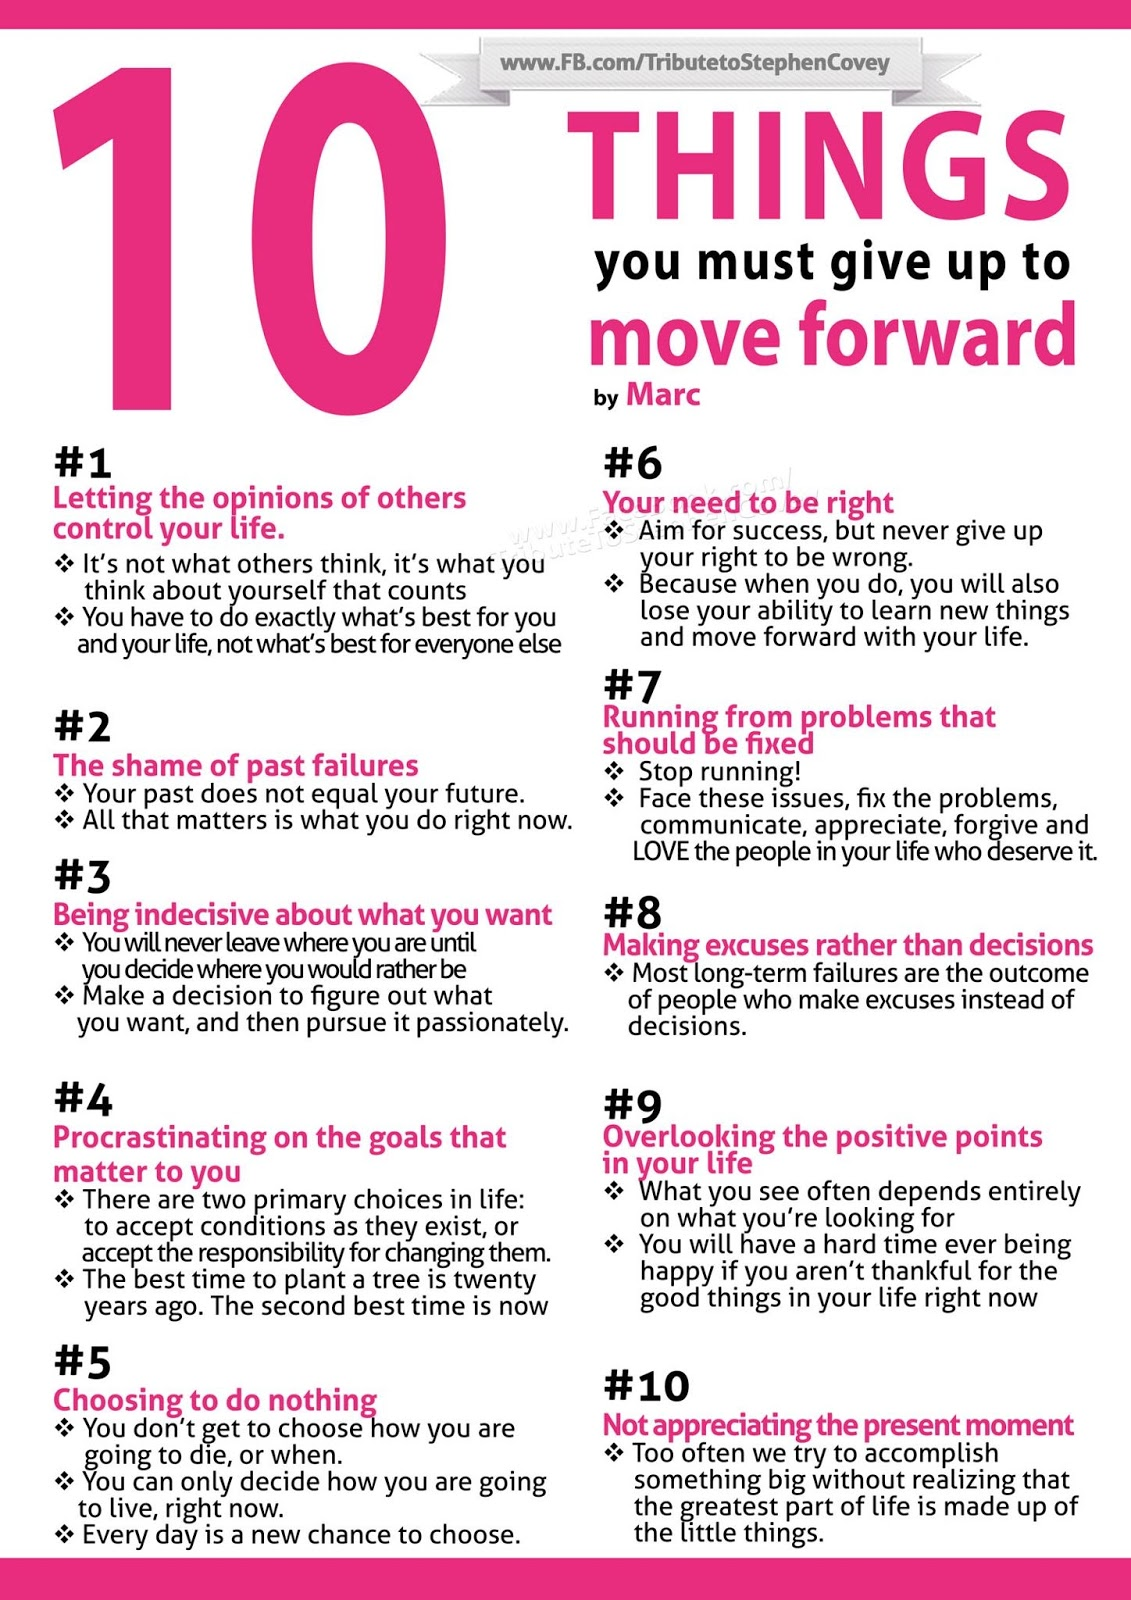 Check Out The More Like This: 10 Things You Must Give Up To Move Forward